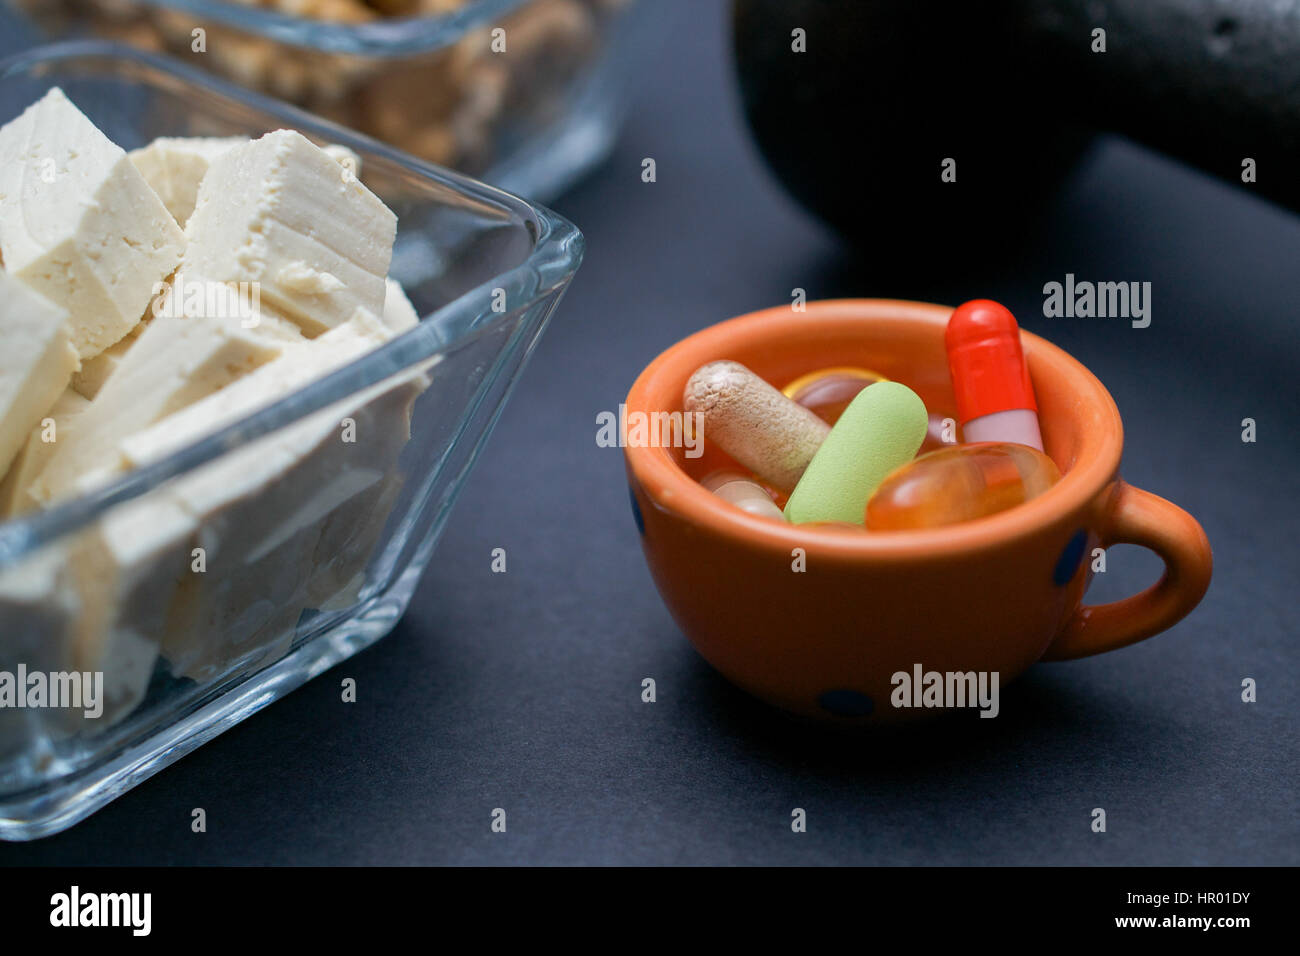 Closeup on dumbbell, walnut, tofu and dietary supplements on dark background: fitness and weight loss concept. - Stock Image